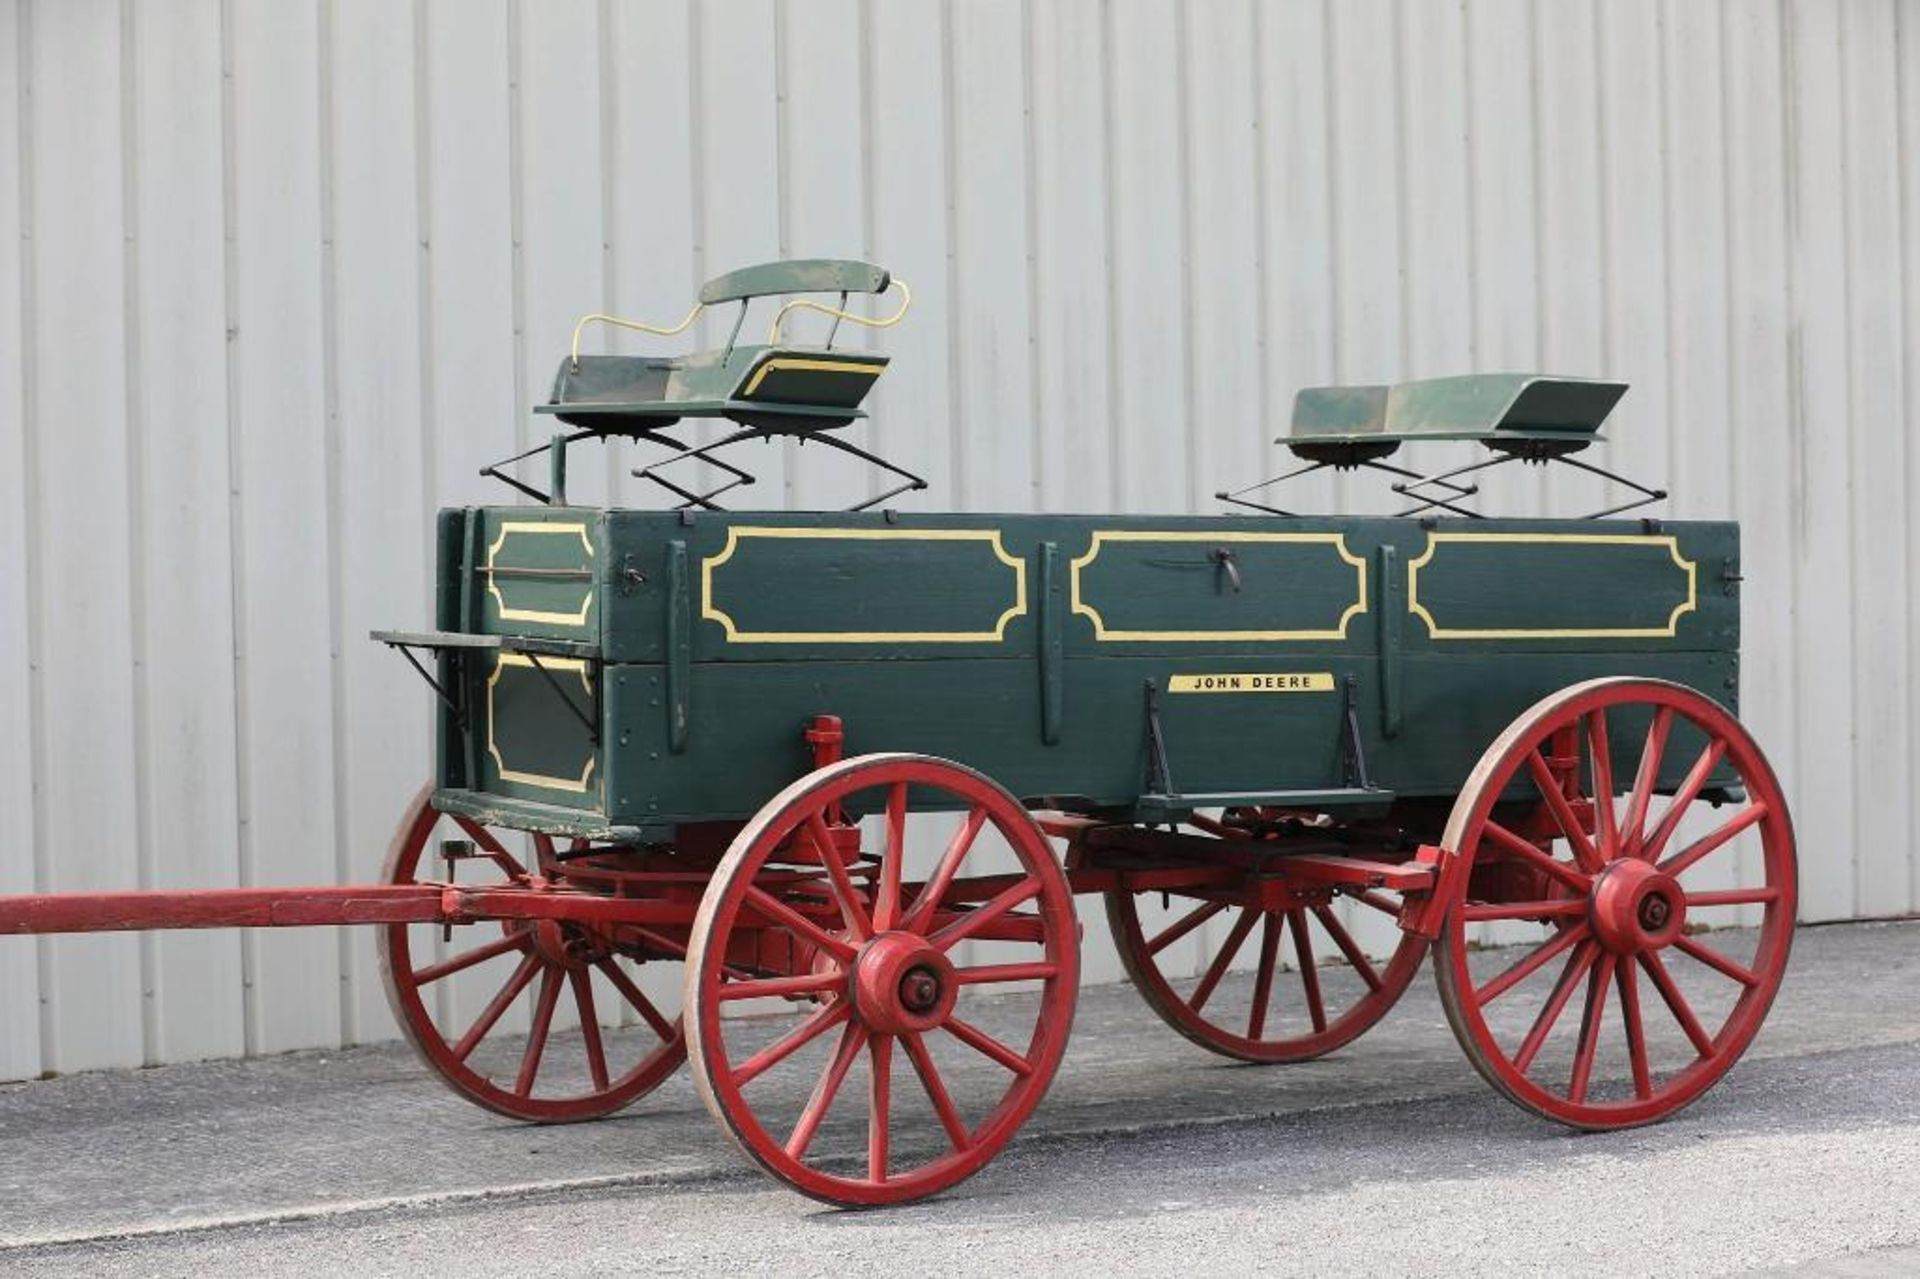 JOHN DEERE Box Bed Farm Wagon, (2) Seats will sell separate - Image 2 of 2